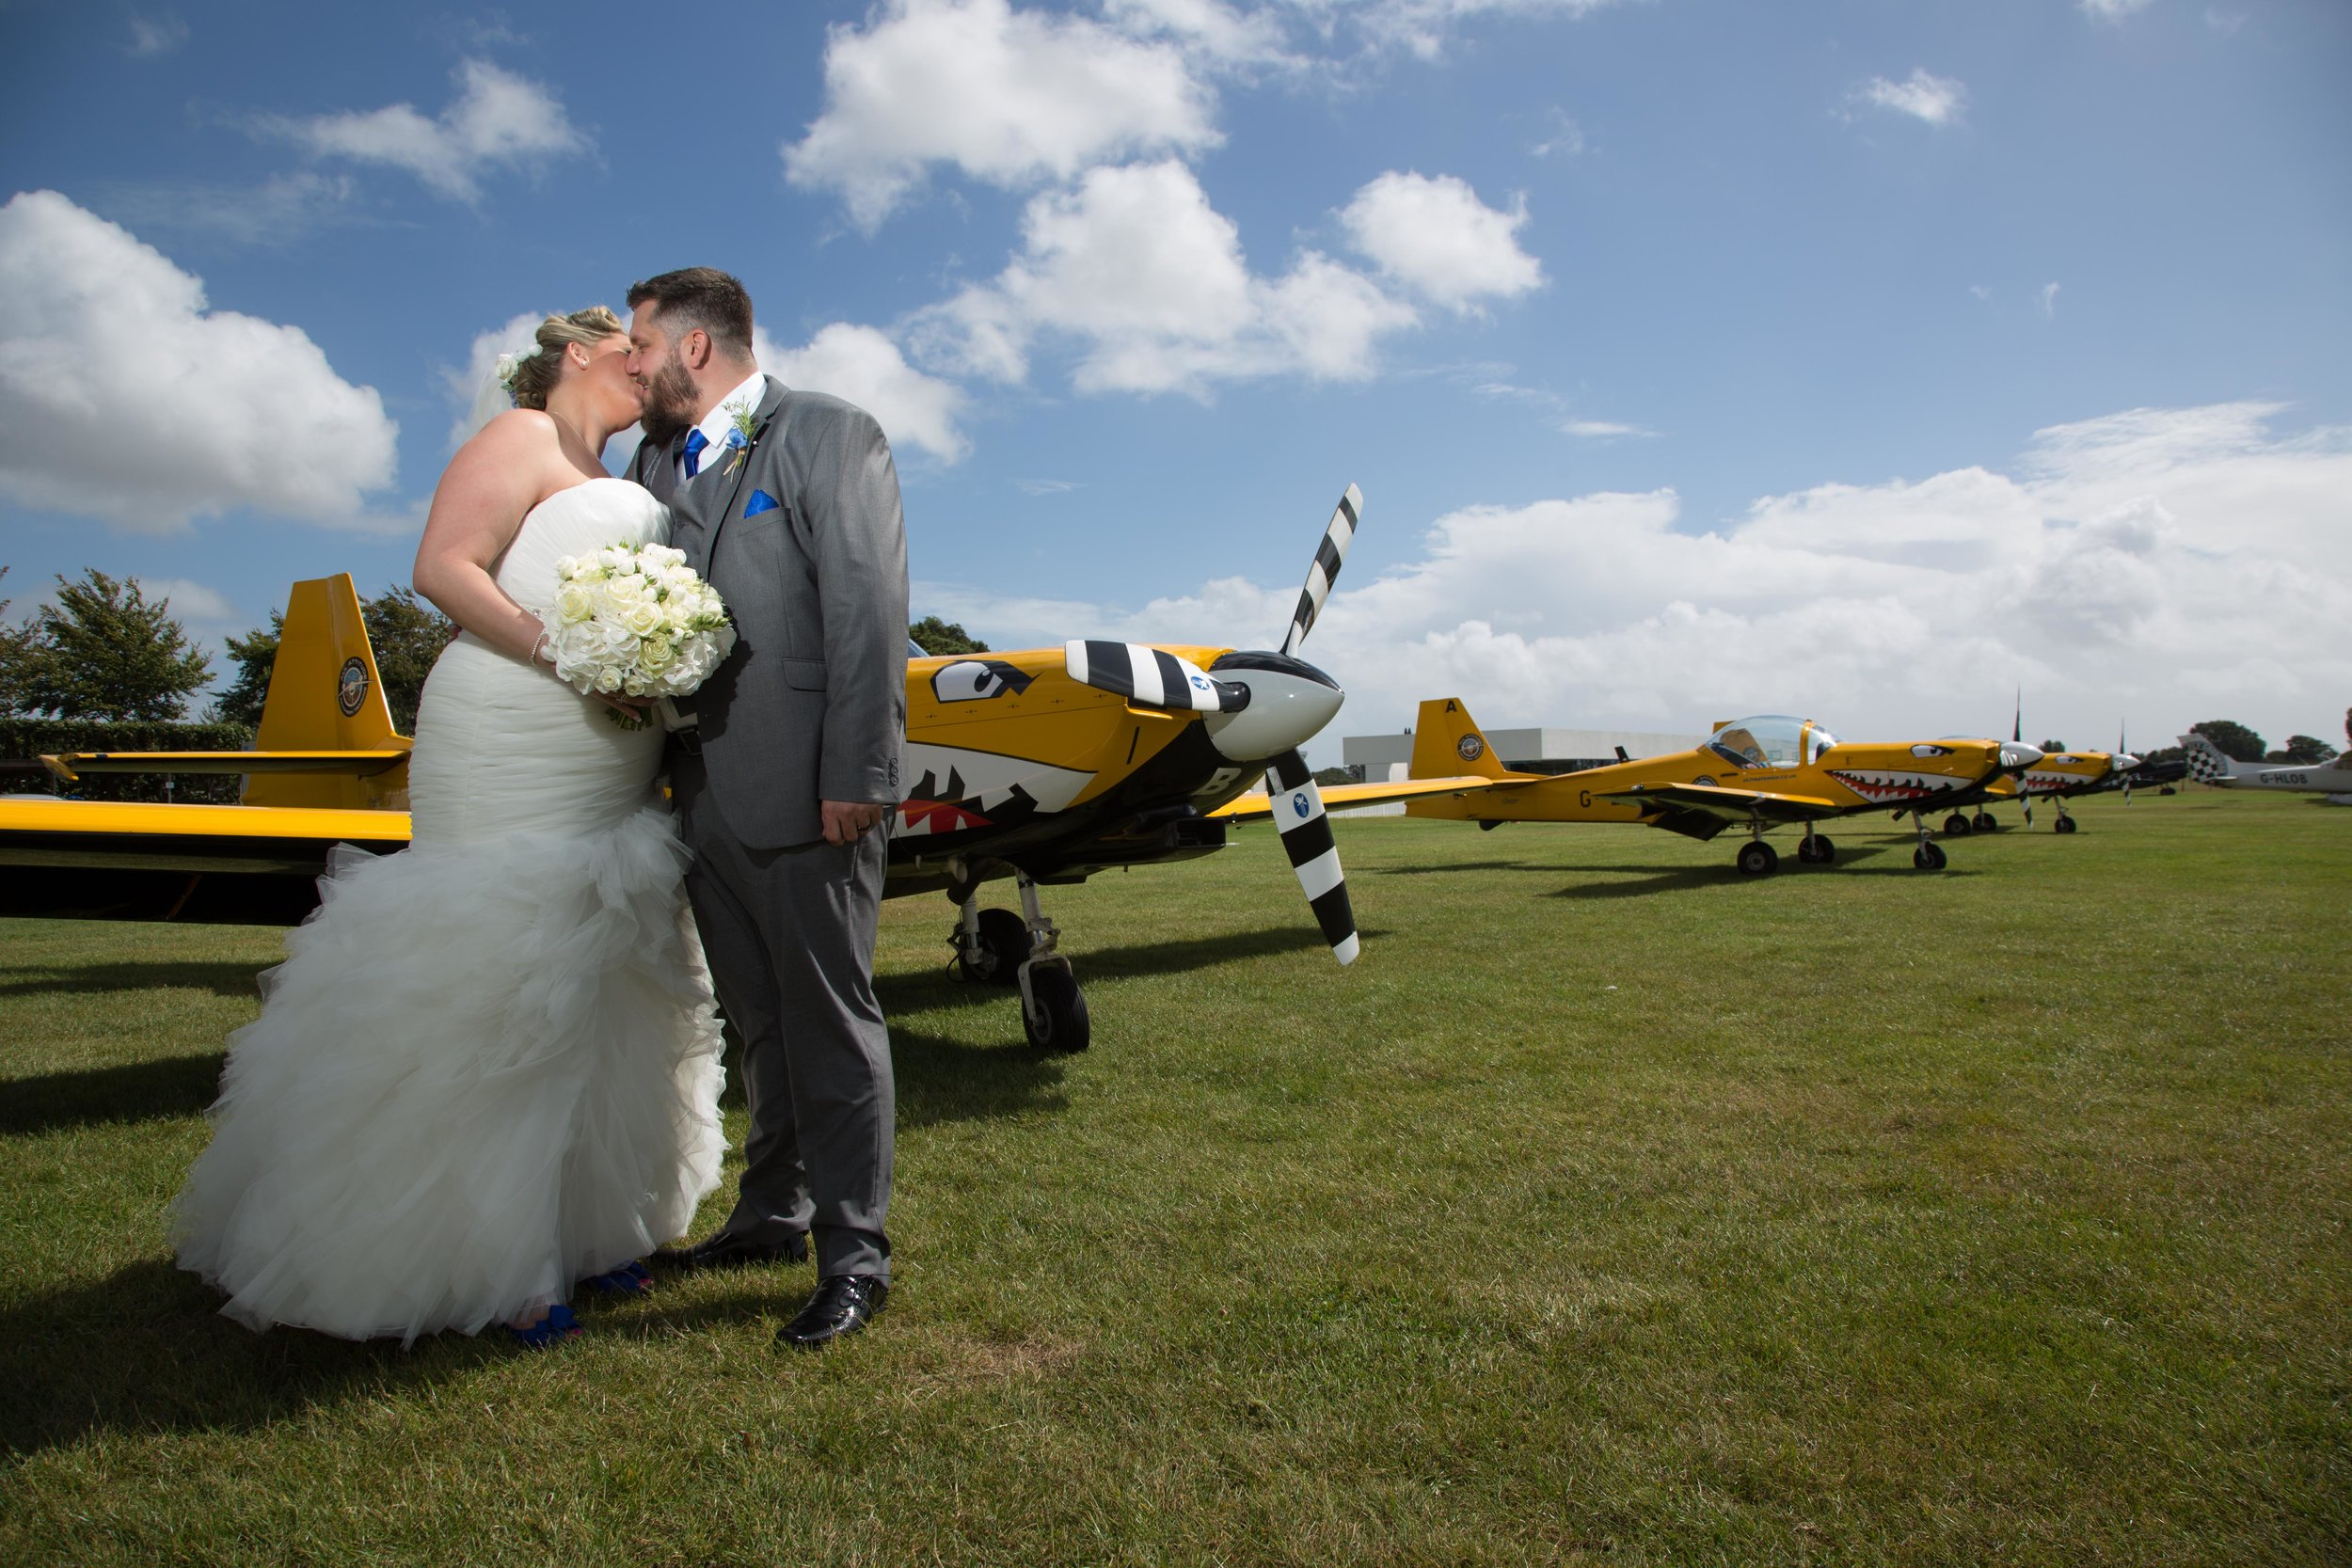 Goodwood-estate-aerodrome-Chichester-Sussex-wedding-40